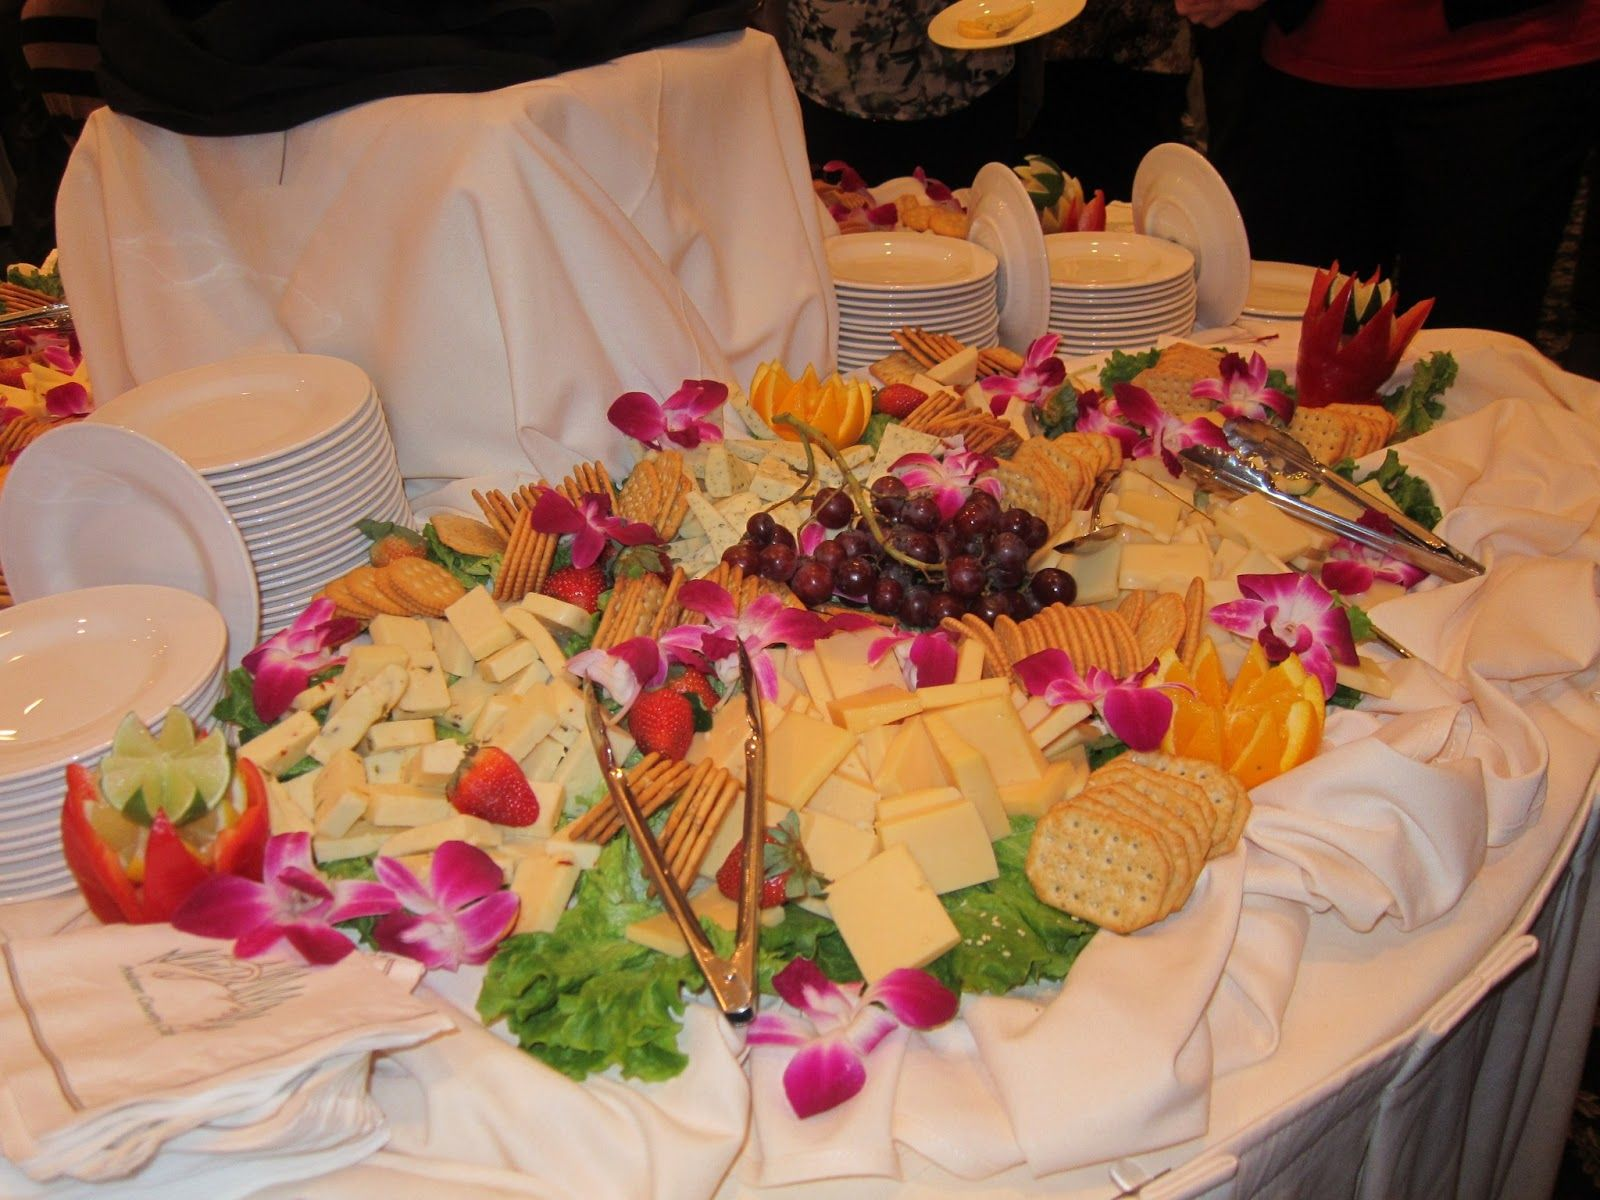 Cheese and cracker display wedding cocktail hour